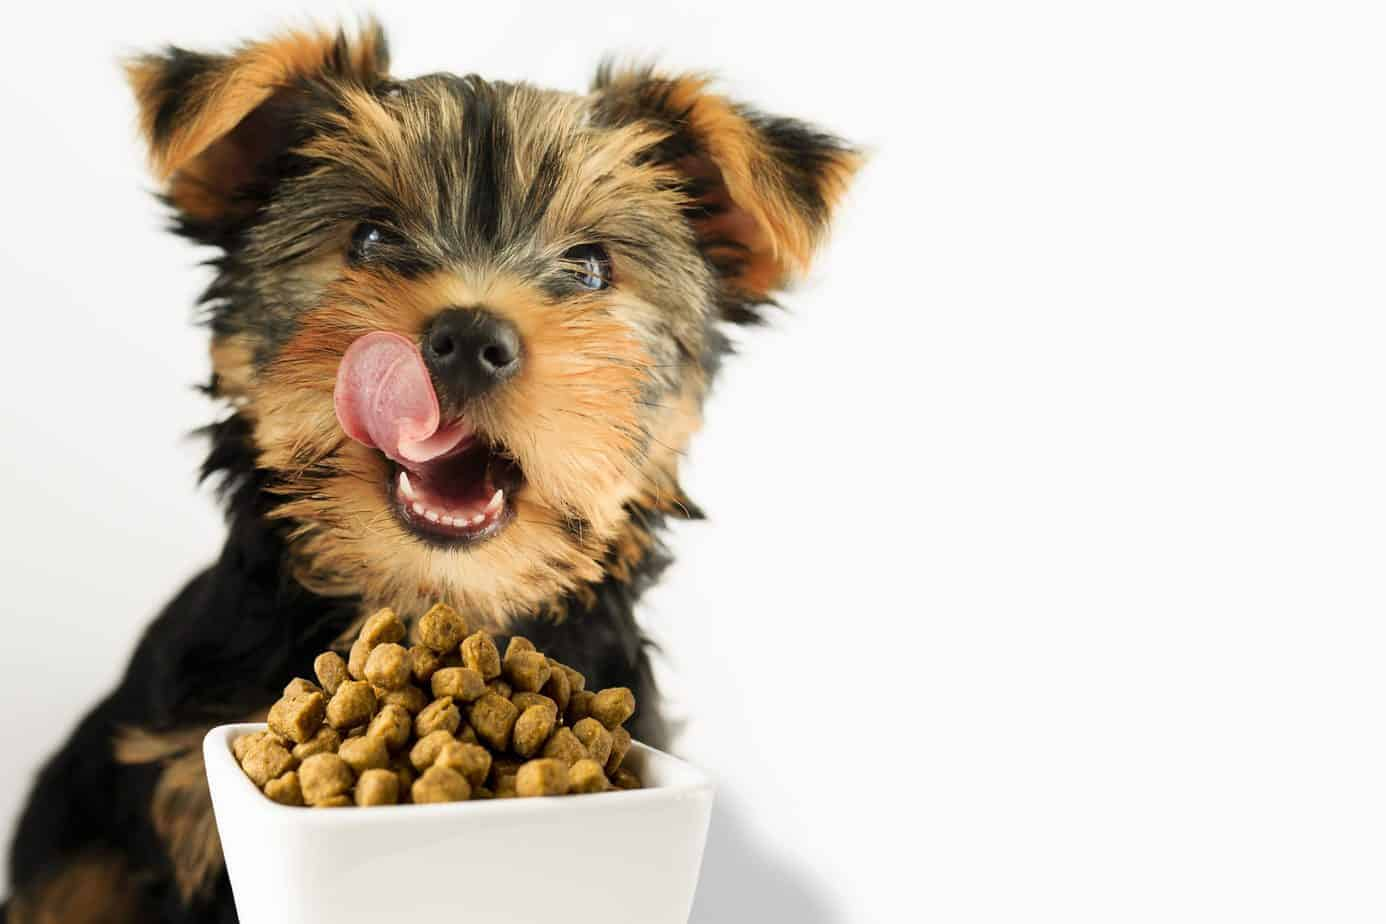 Happy Yorkie puppy licks its lips before eating quality dog food.